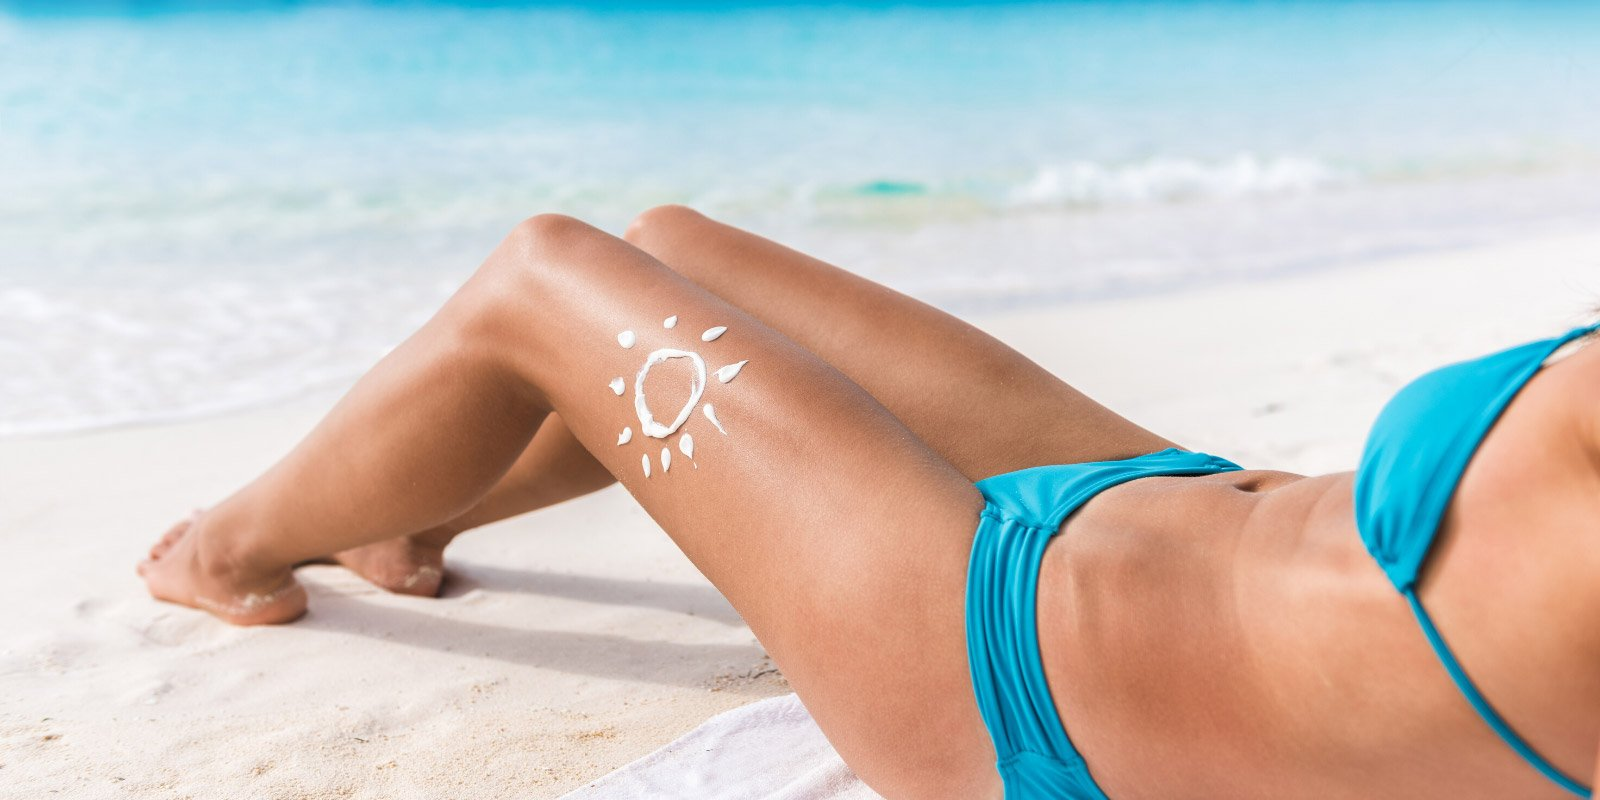 5 Summer Skin Care Essentials You Shouldn't Live Without